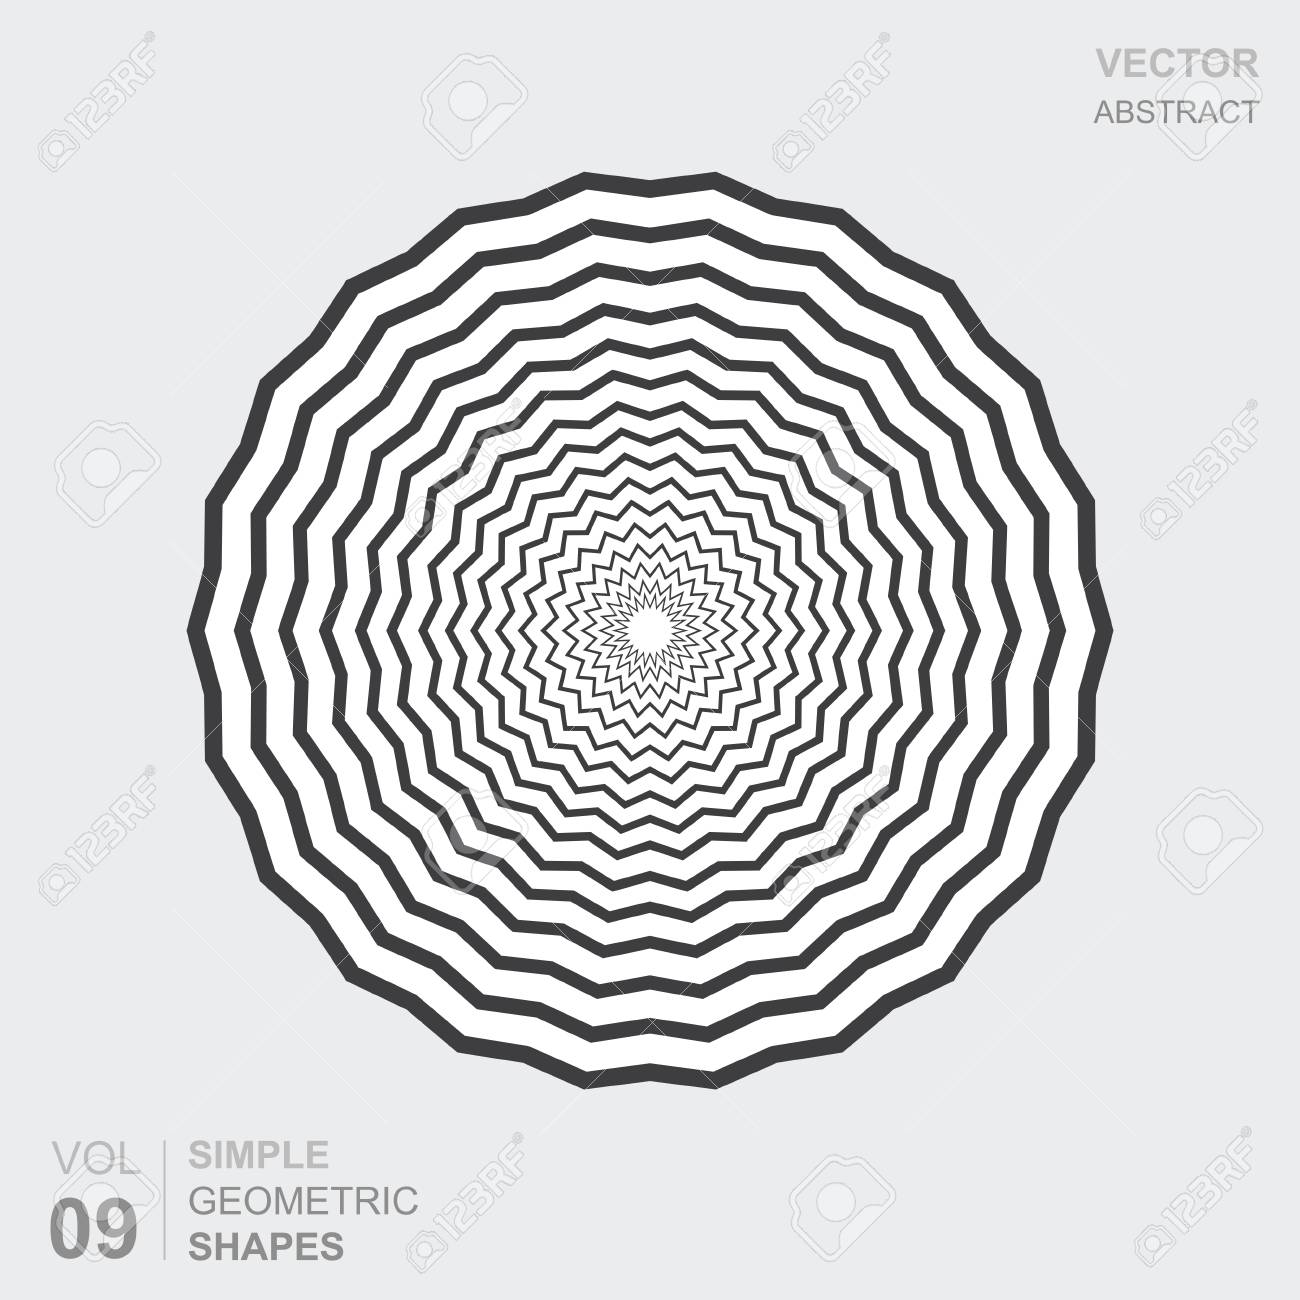 simple geometric figure of a beautiful shape in black and white